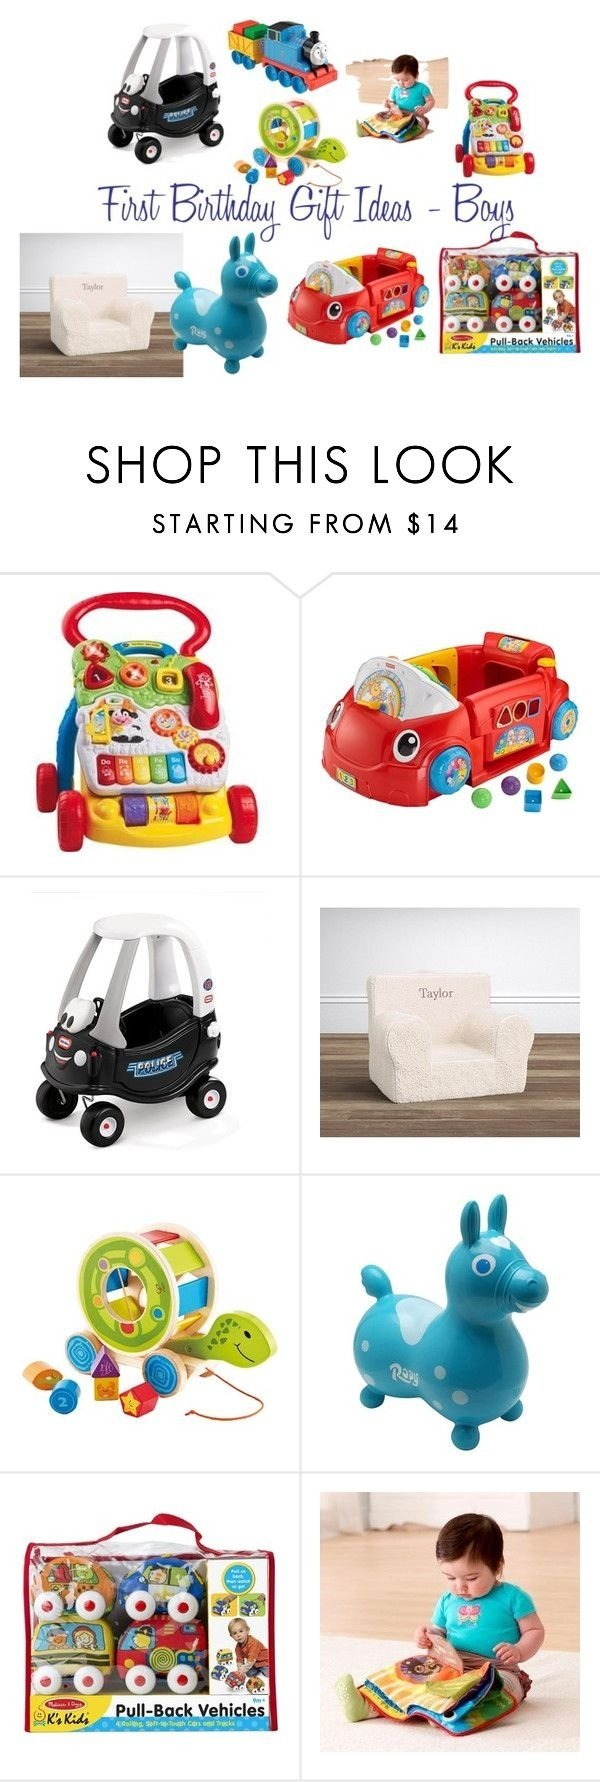 10 Lovable First Birthday Gift Ideas For Boys From Parents